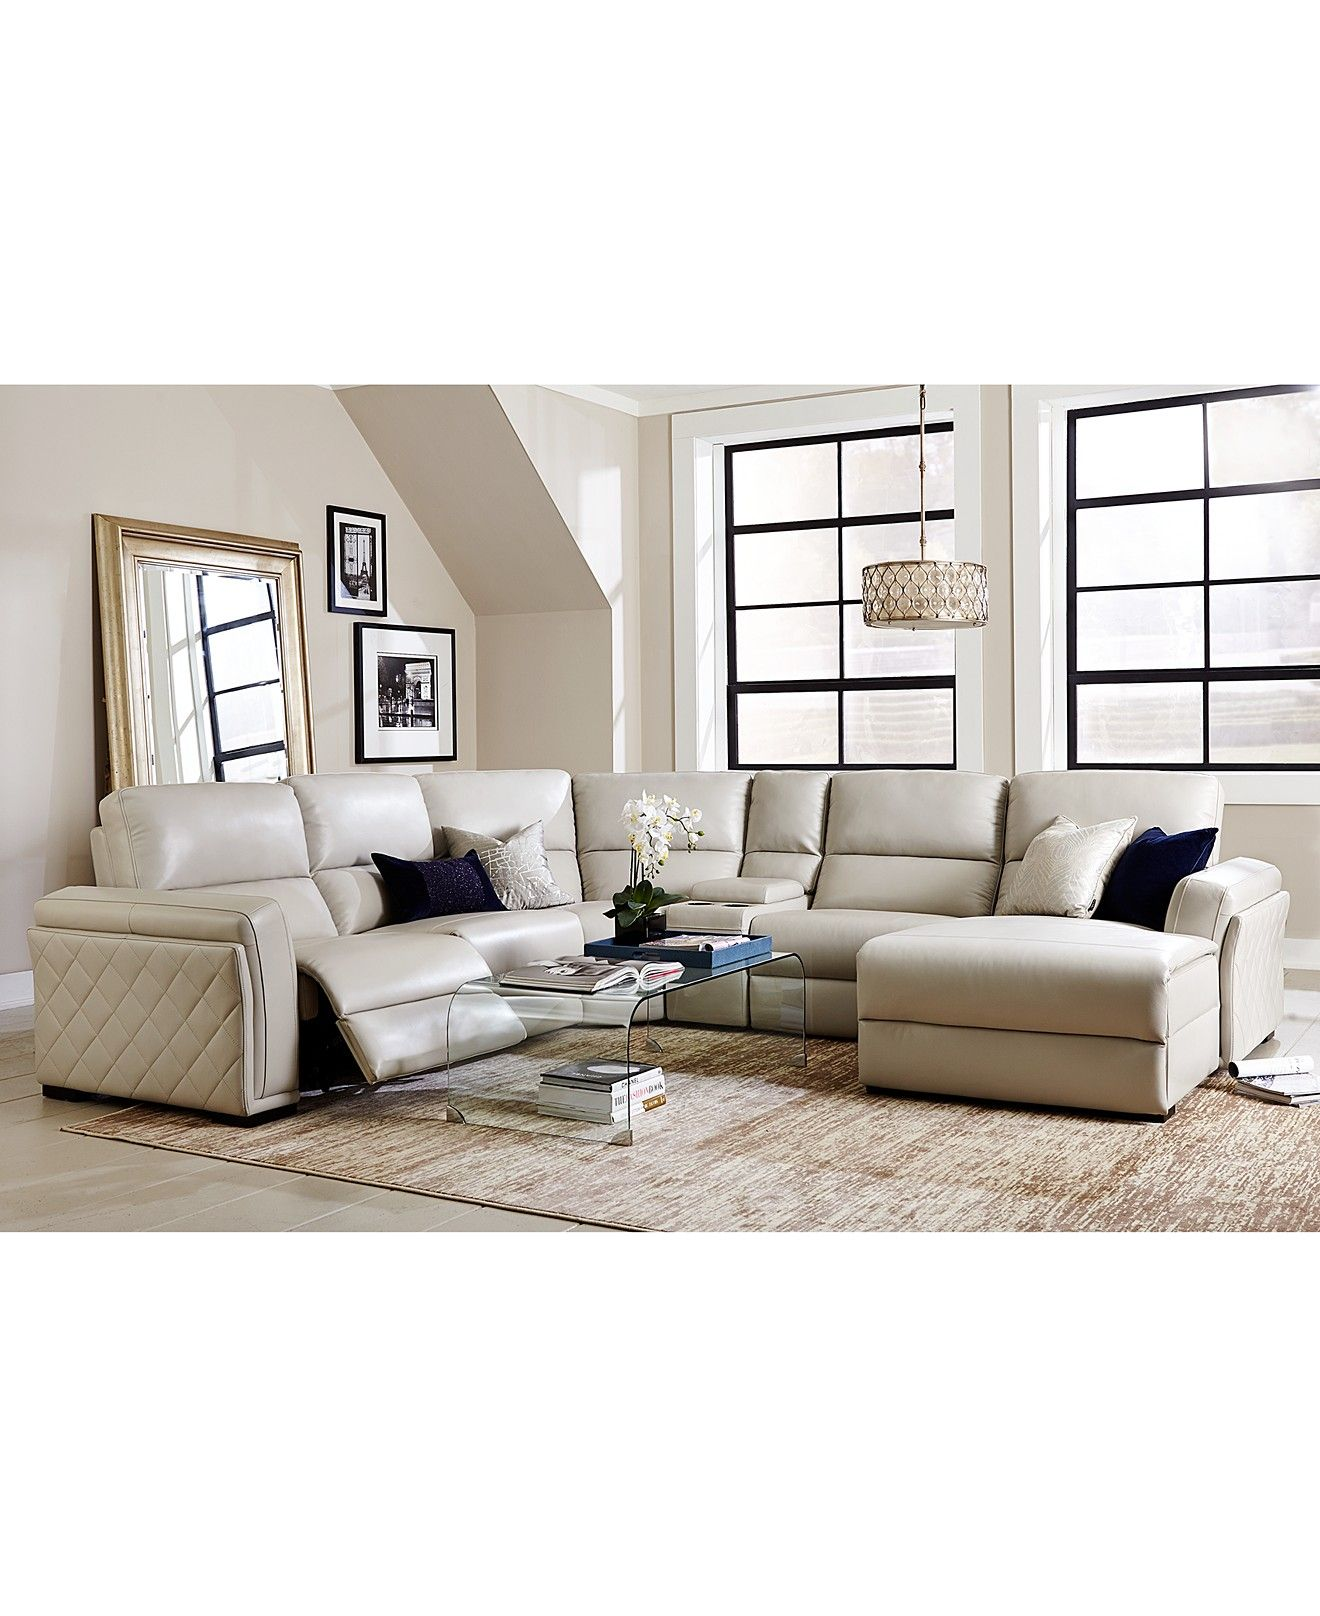 Jessi Quilted Side Leather 6 Piece Chaise Sectional Sofa With 1